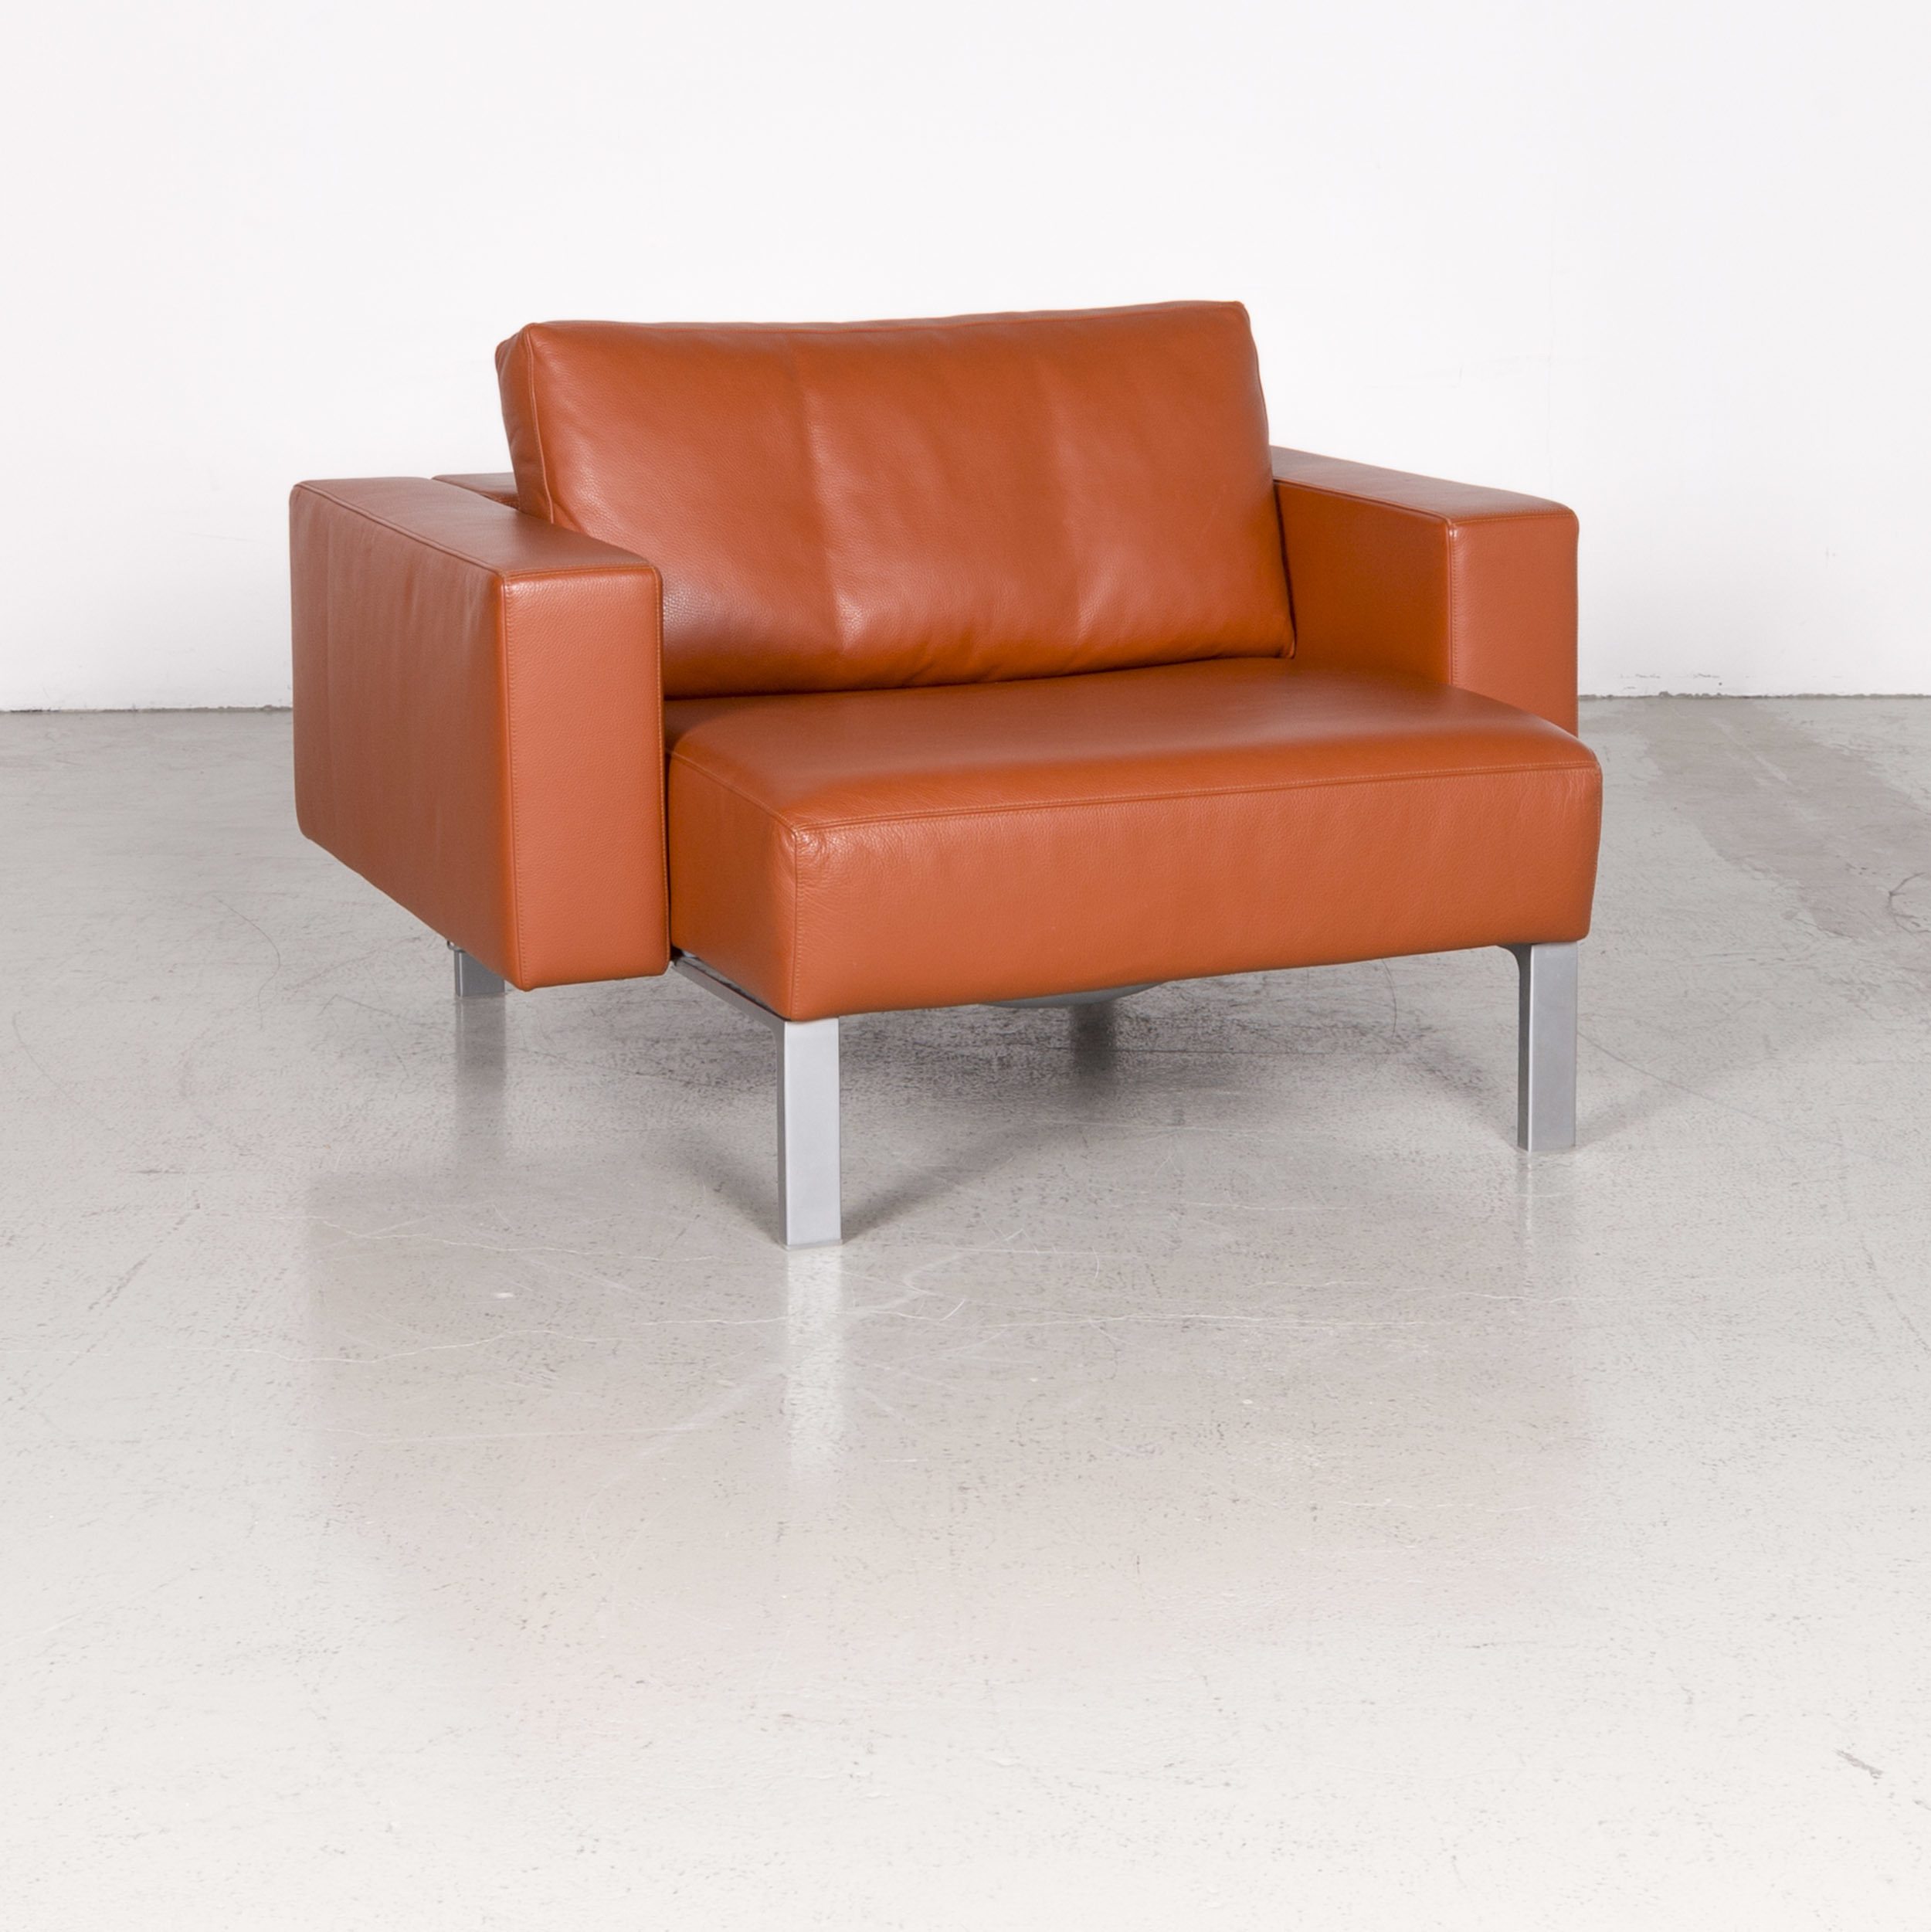 Walter Knoll Nelson Designer Leather Armchair Orange Genuine Leather Intended For Walter Leather Sofa Chairs (Image 15 of 20)